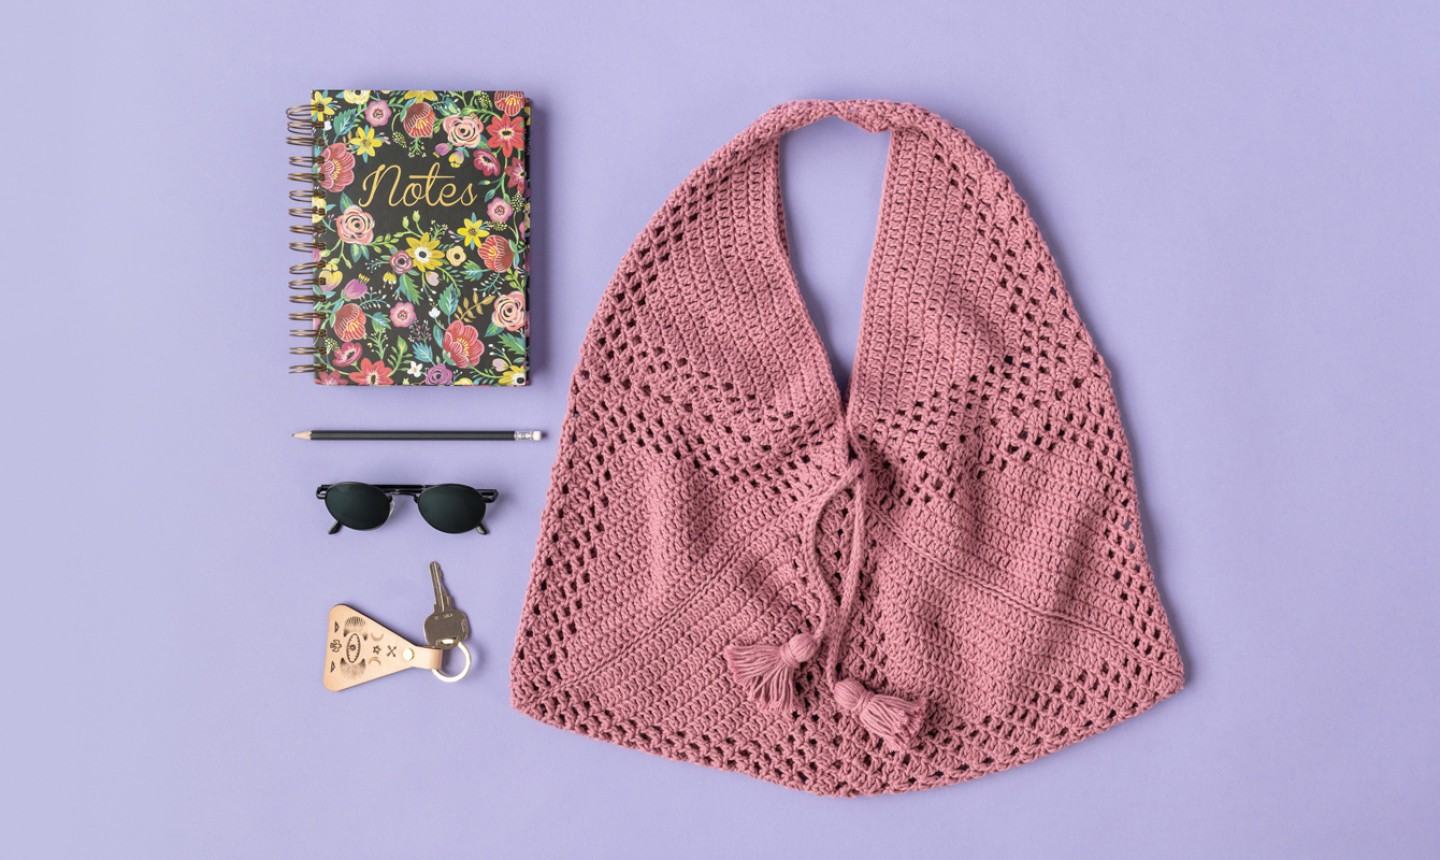 crochet market bag flat lay